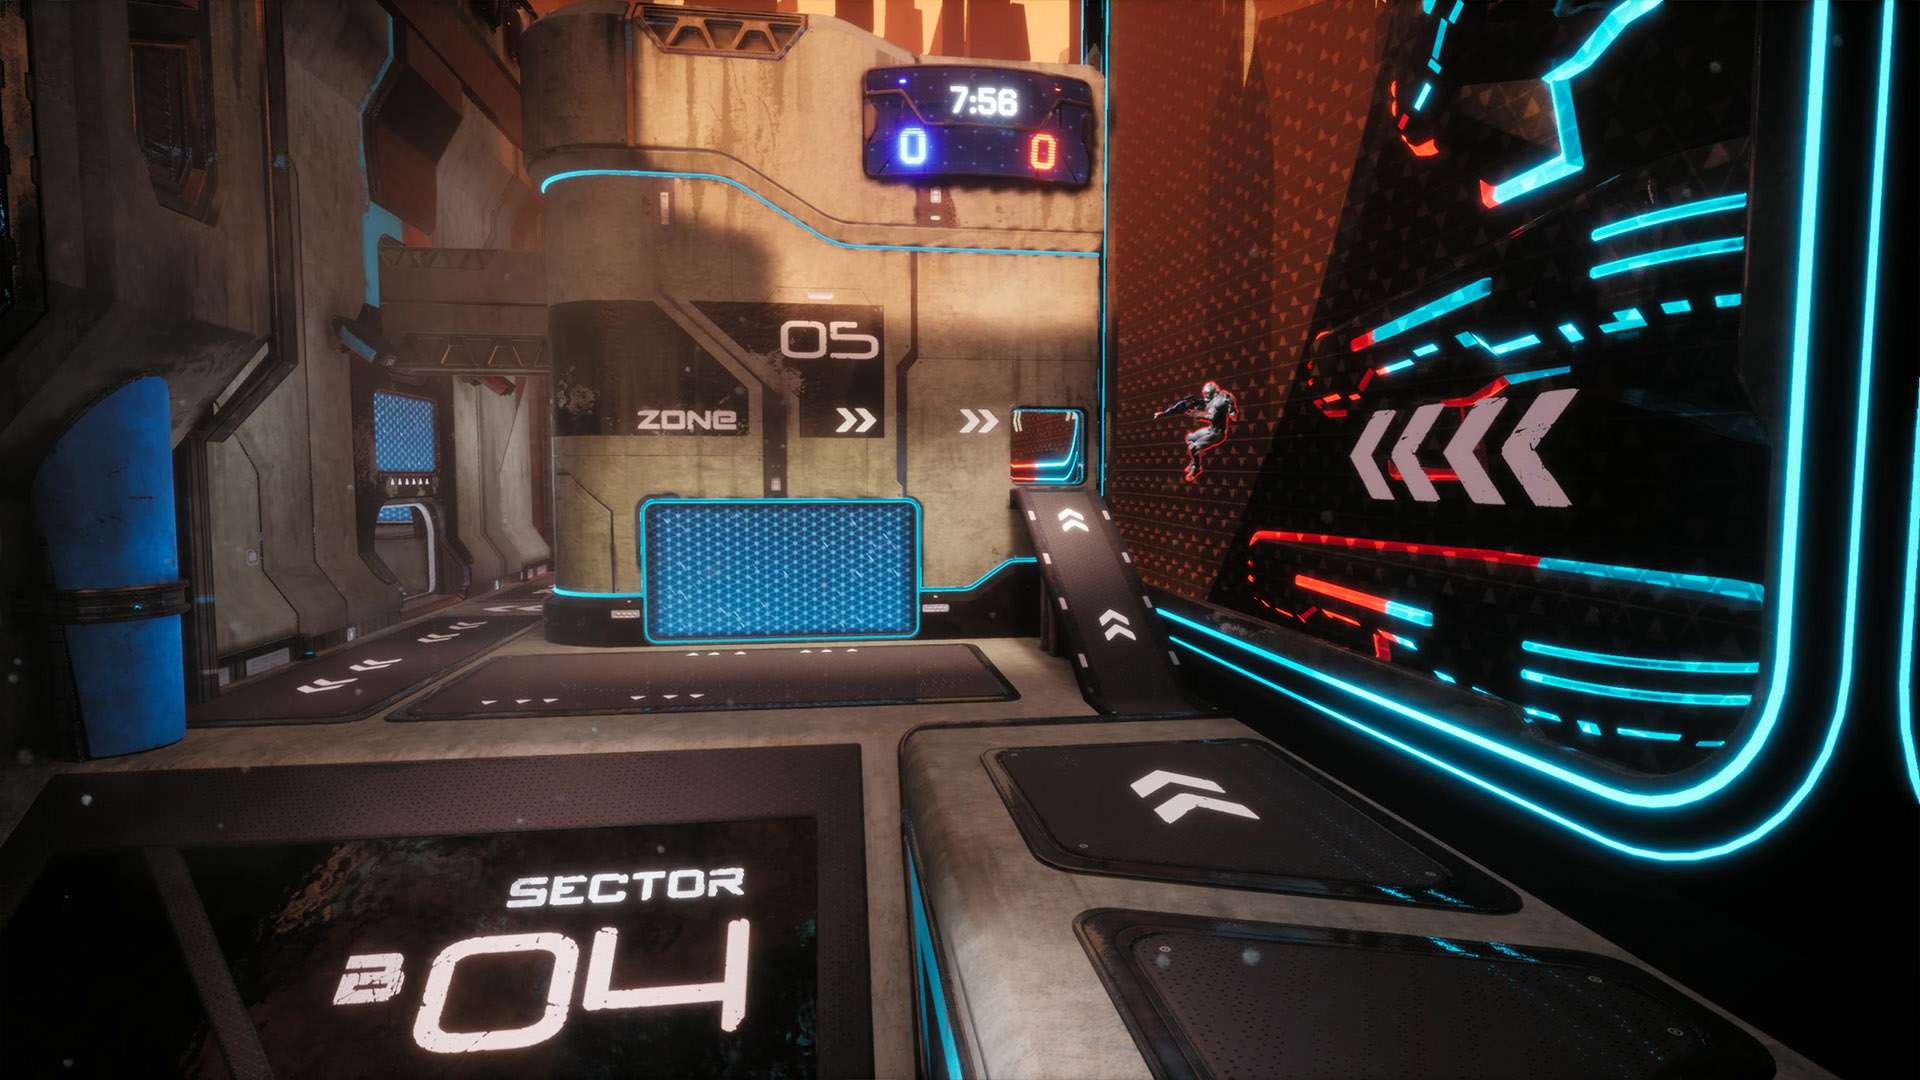 Arrows pointing towards the player in Splitgate Arena Warfare